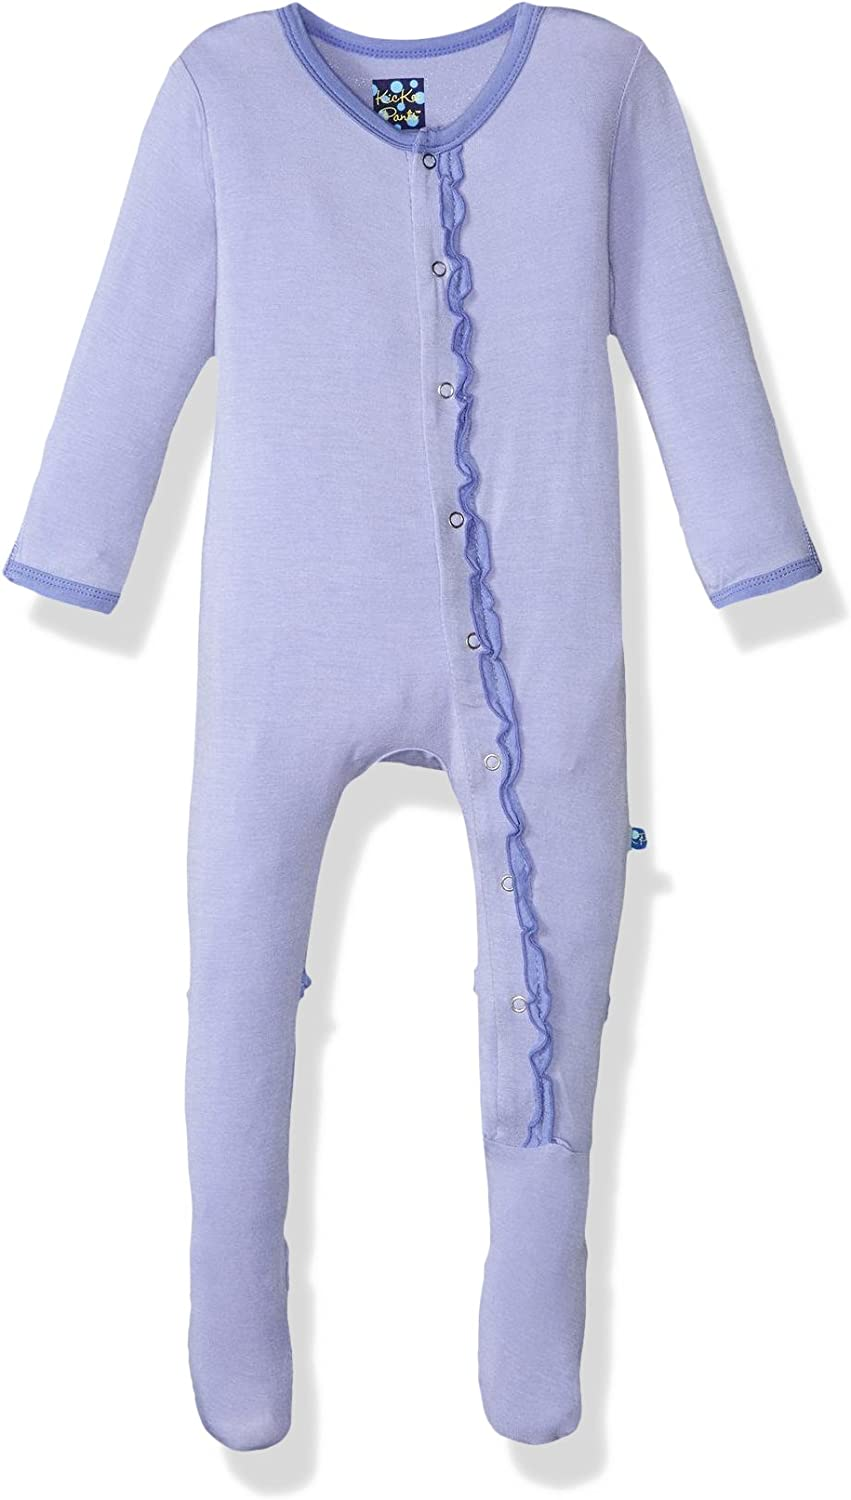 Kic NEW before selling Kee Pants Baby Girls' Footie Solid Oakland Mall Muffin Prd-kpmrf39 Ruffle